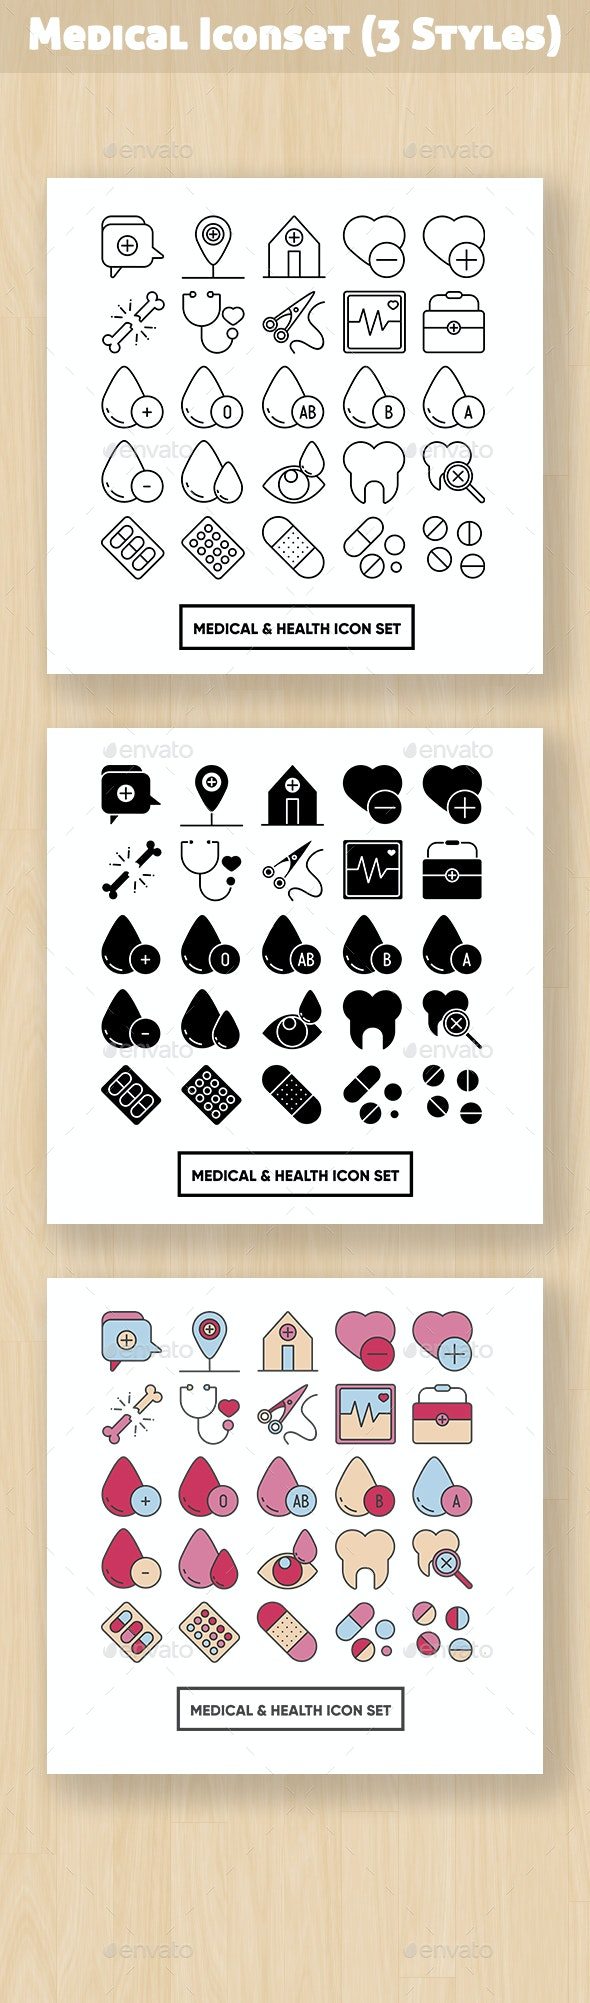 Medical And Health Iconset - Objects Icons